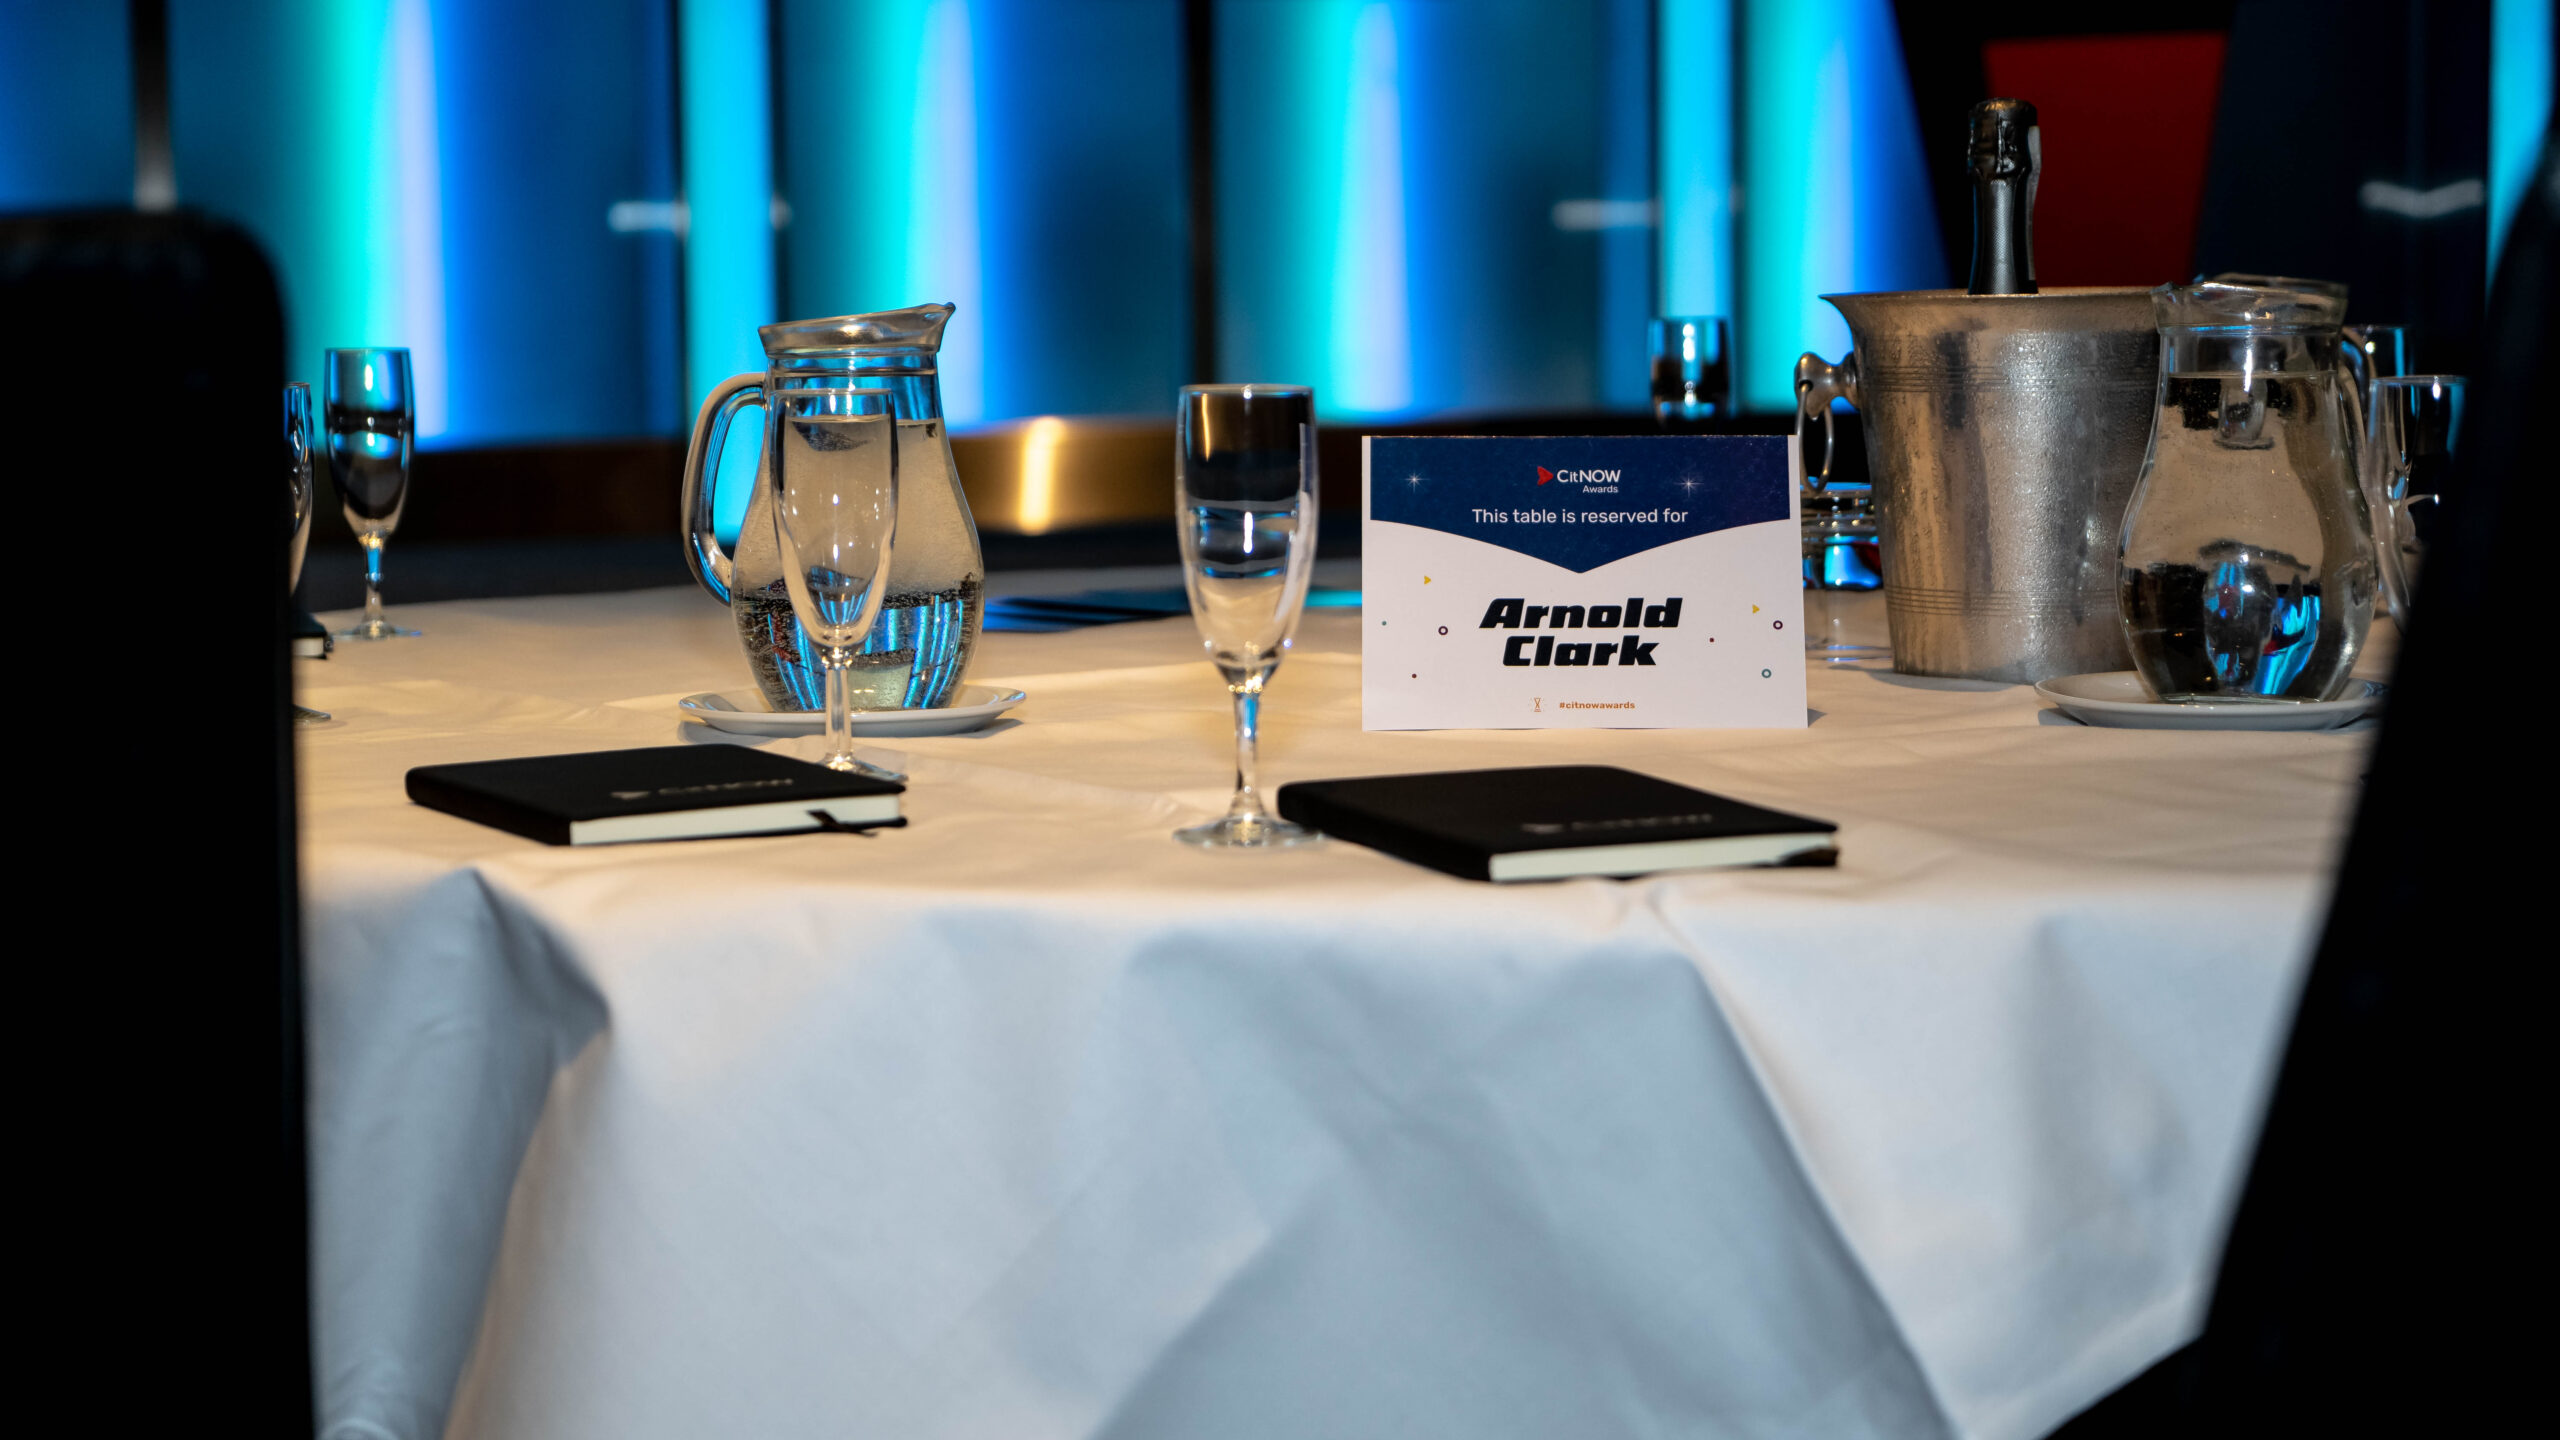 A table reserved for Arnold Clark